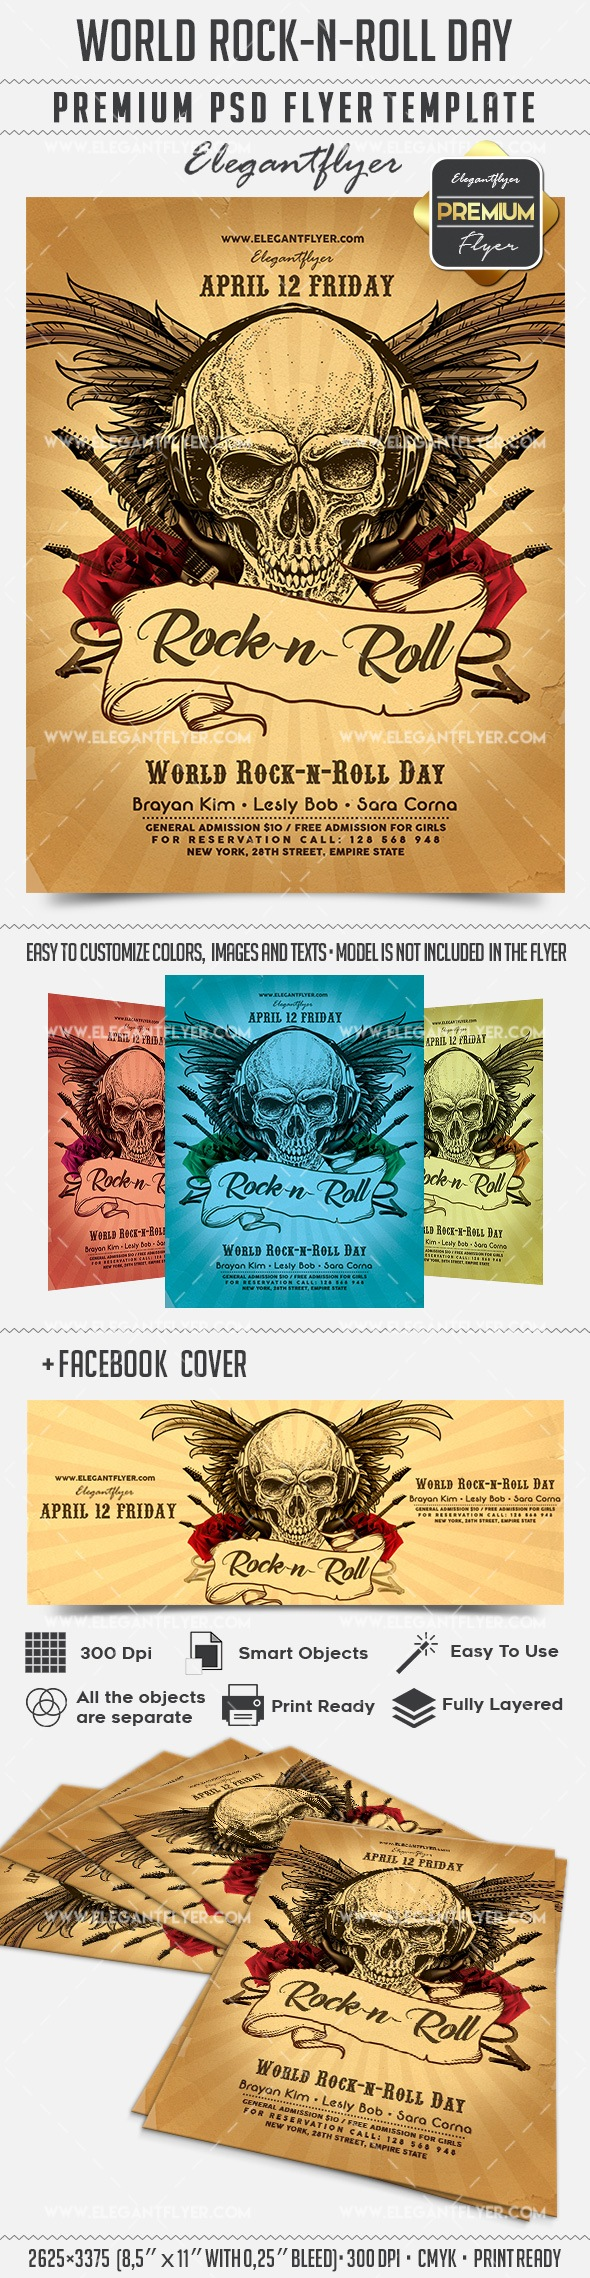 World Rock-n-Roll Day – Flyer PSD Template